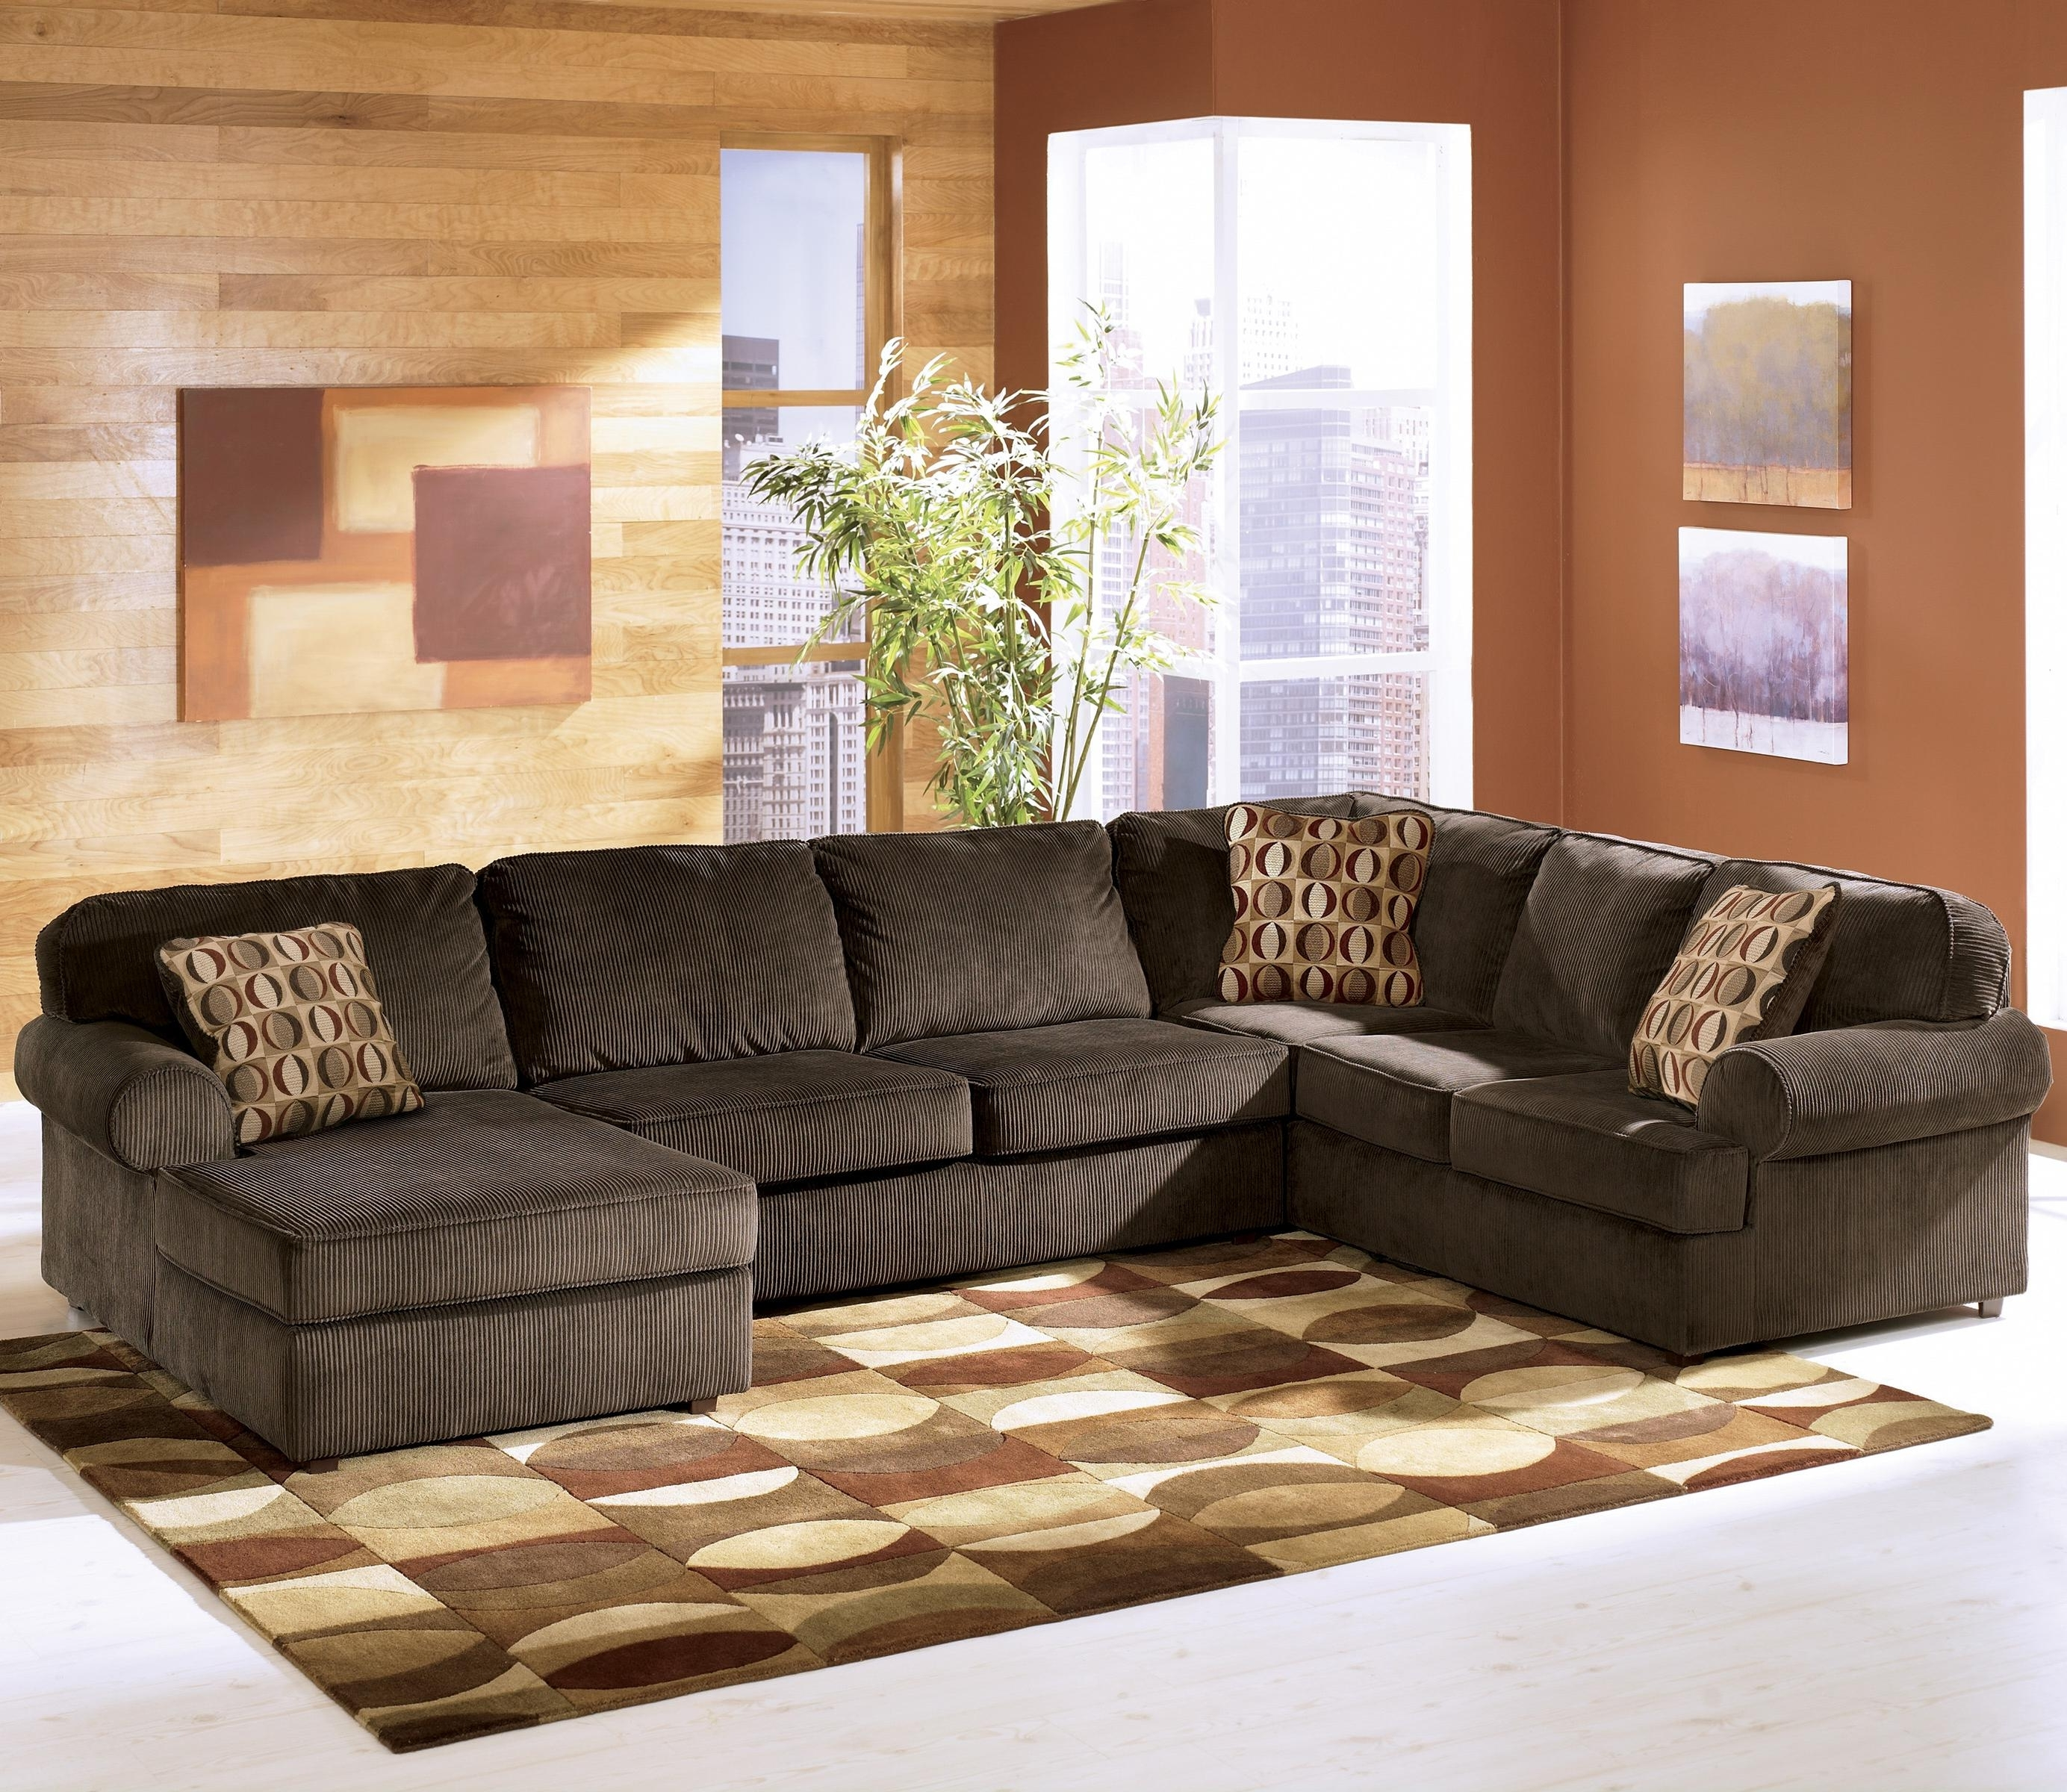 Newest Kansas City Mo Sectional Sofas With Regard To Charlton Home® Brewster Sectional Https://www (View 10 of 15)